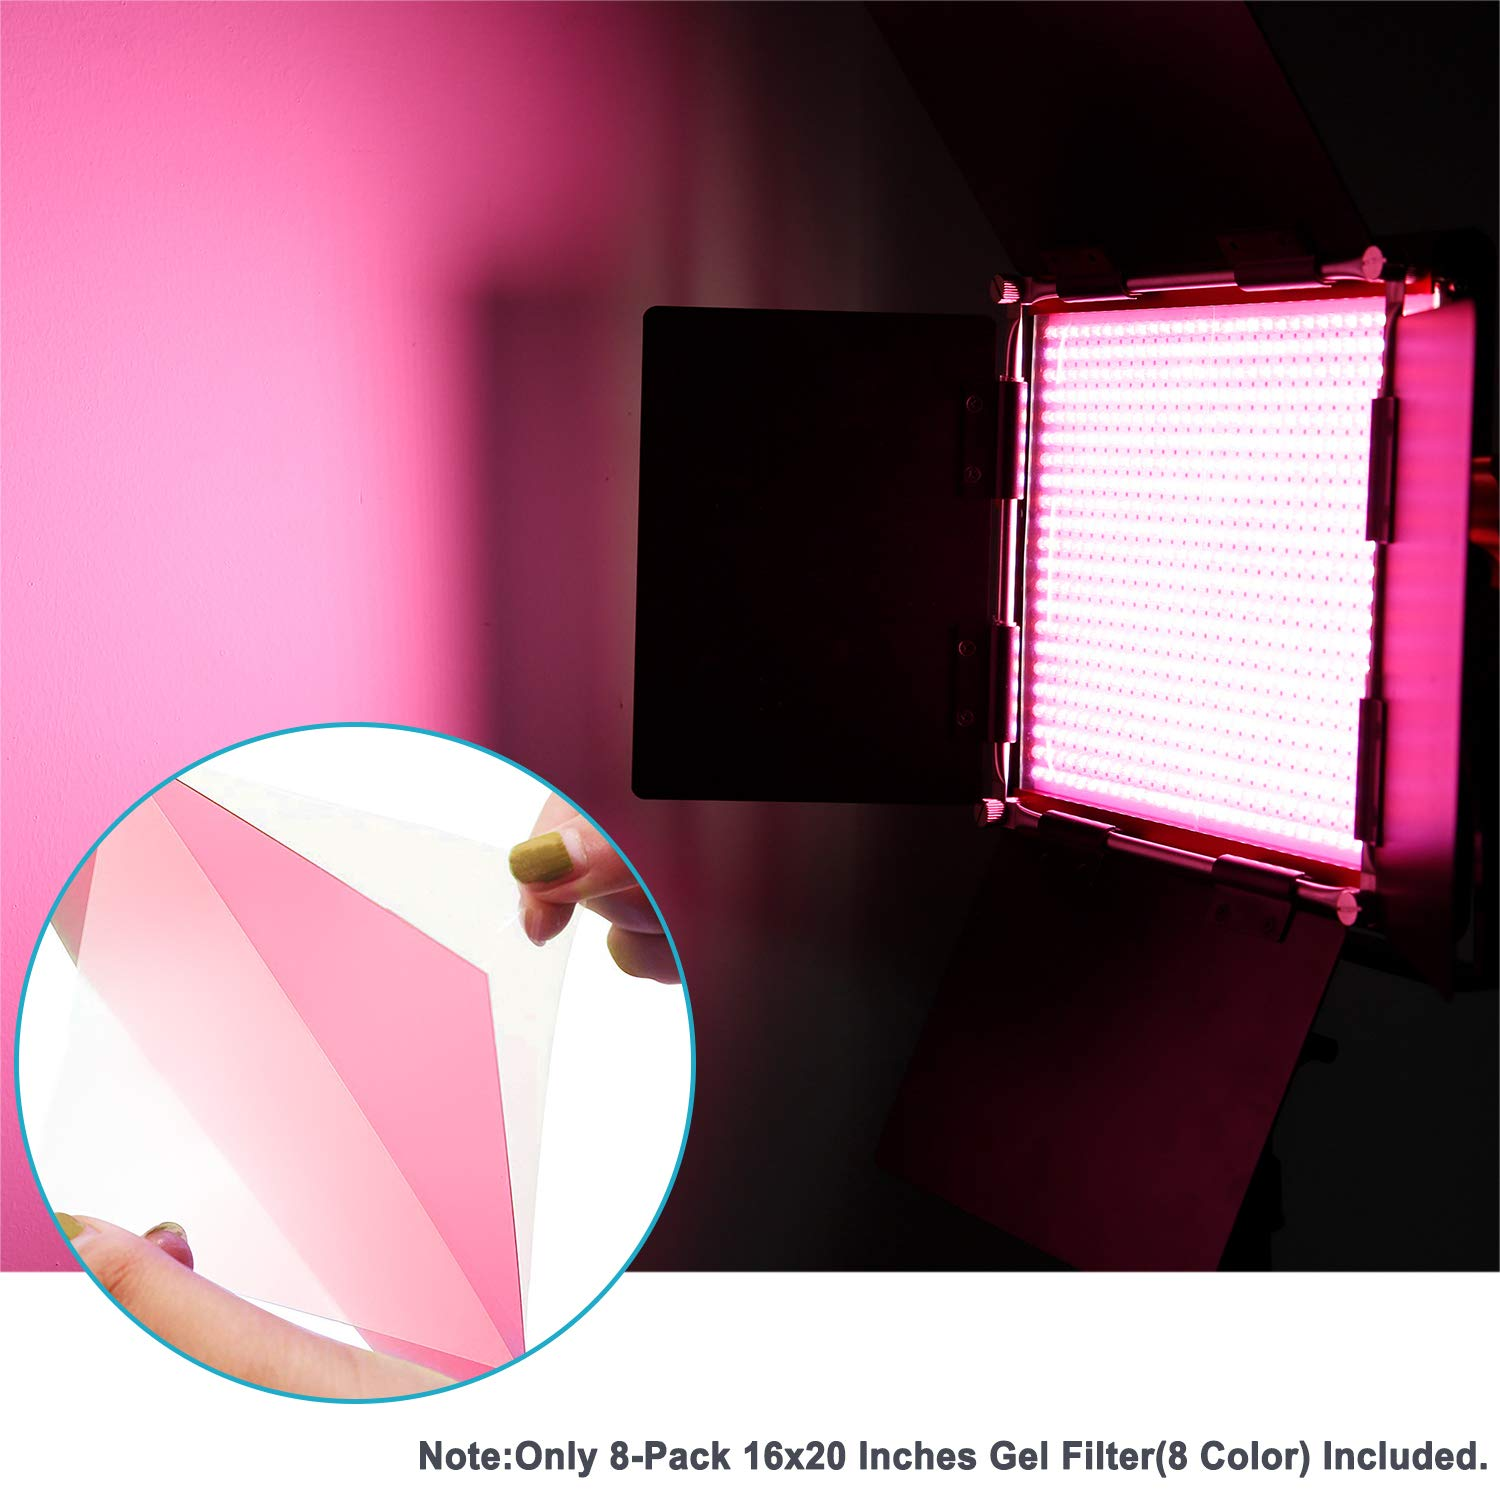 Neewer 8 Pieces Gel Color Filter with 8 Colors -16x20 inches Transparent Color Film Plastic Sheets, Correction Gel Light Filter for Photo Studio Strobe Flash, LED Video Light, DJ Light, etc. by Neewer (Image #2)